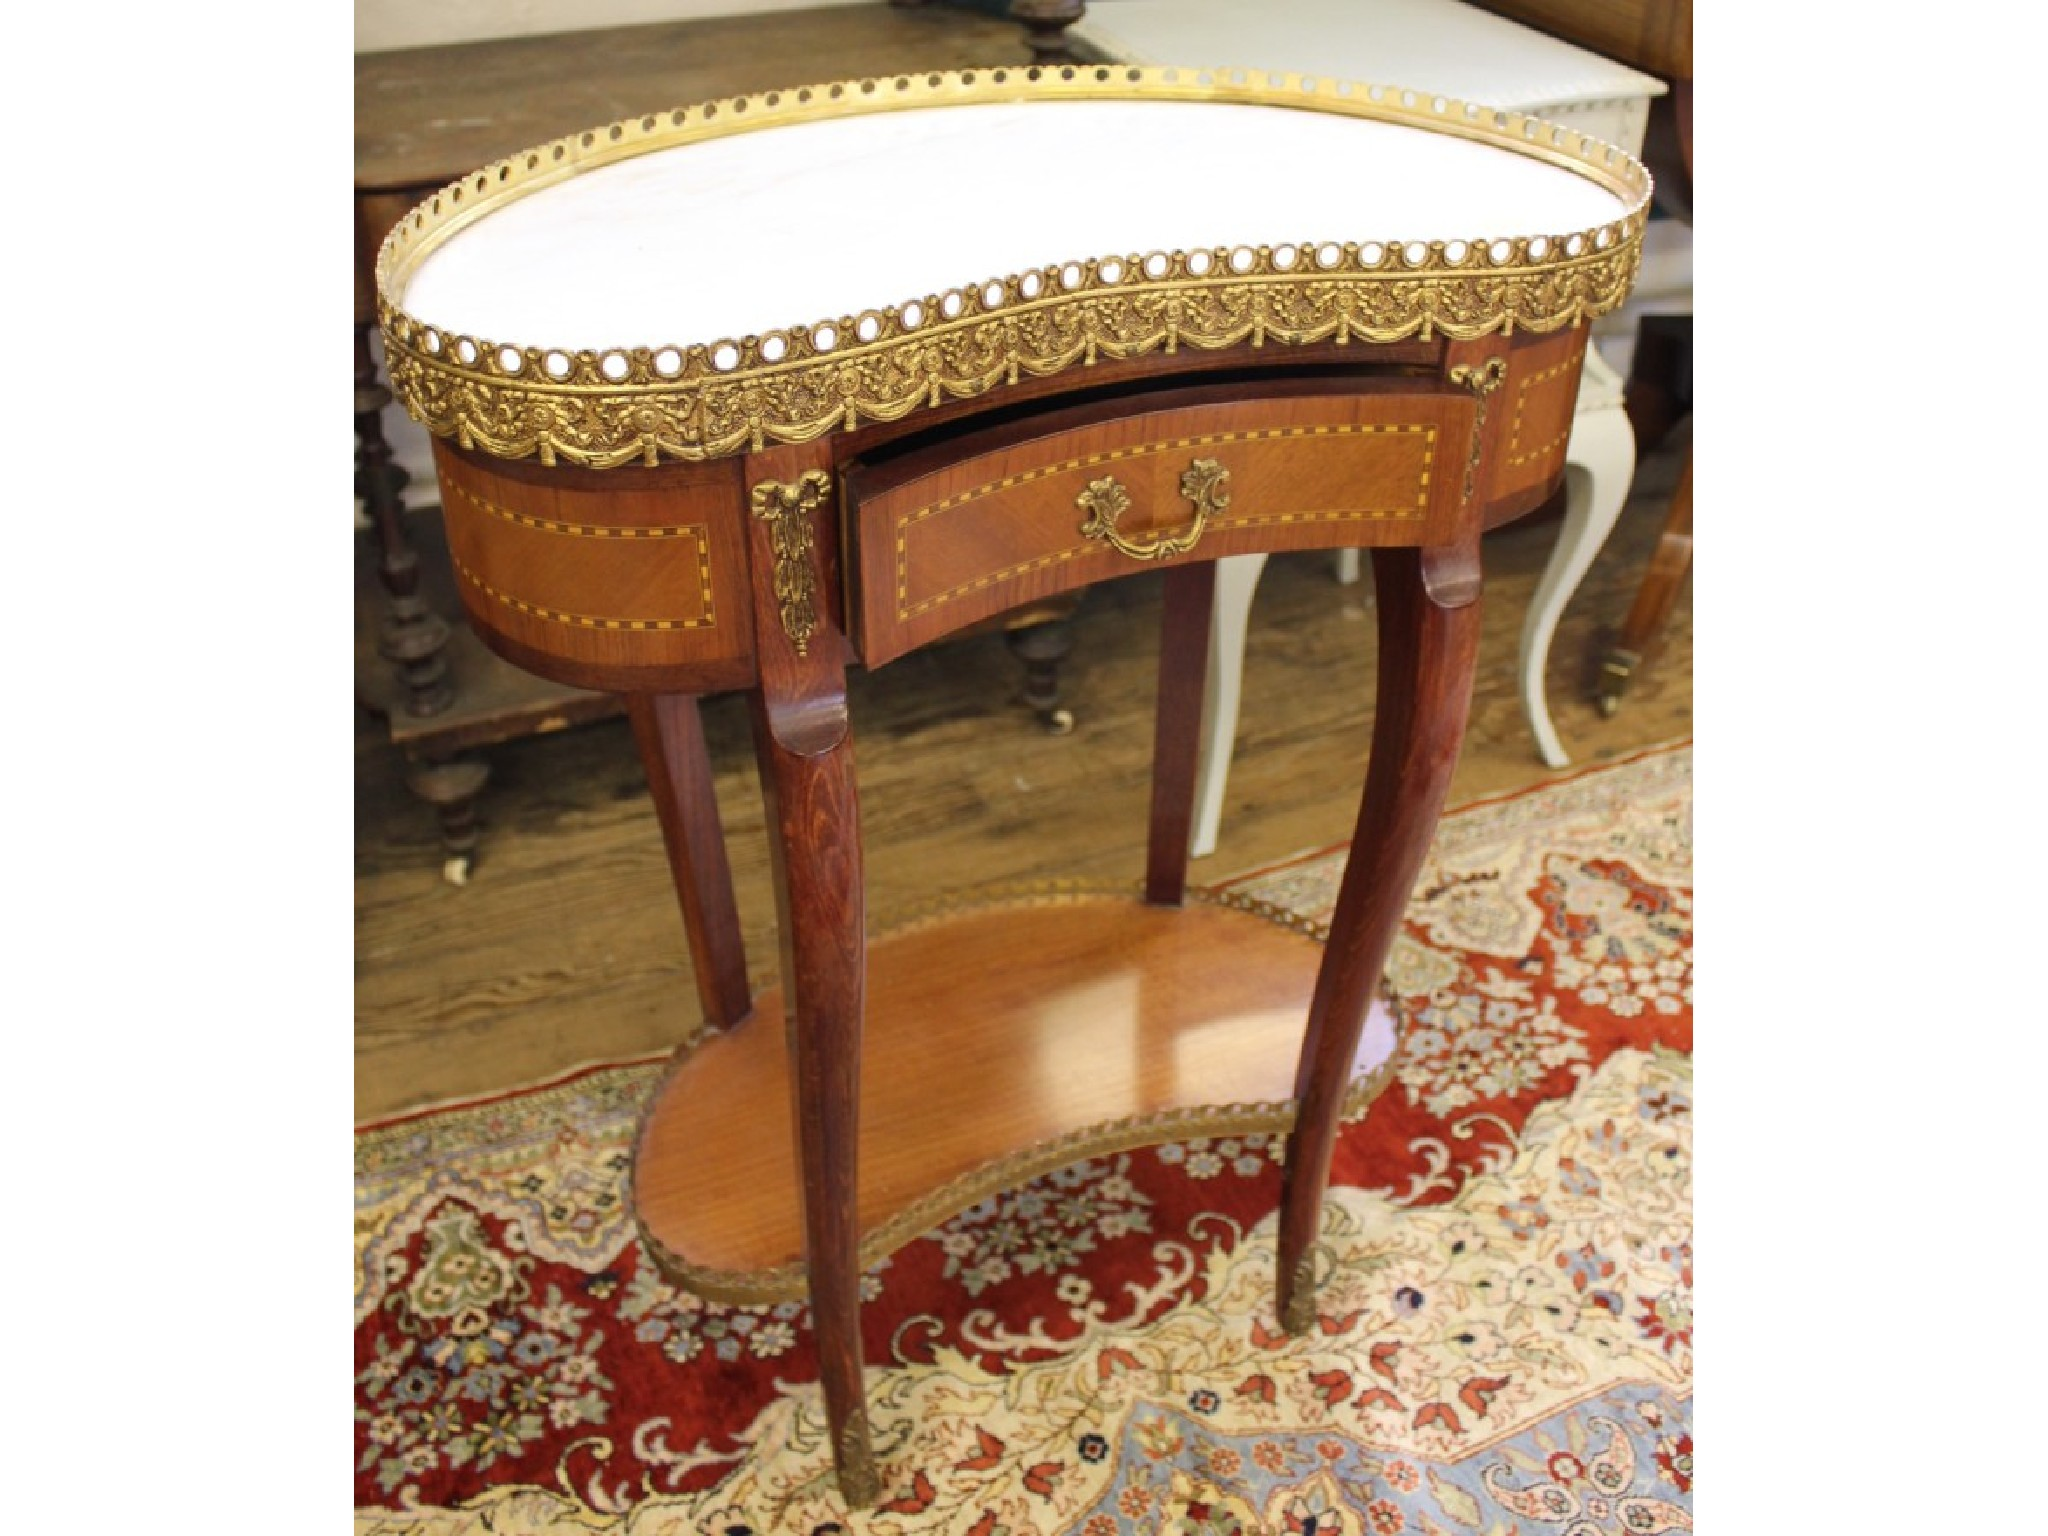 French style kidney shape side table, the white marble top with gilt metal gallery over frieze drawers and mounted cabriole legs